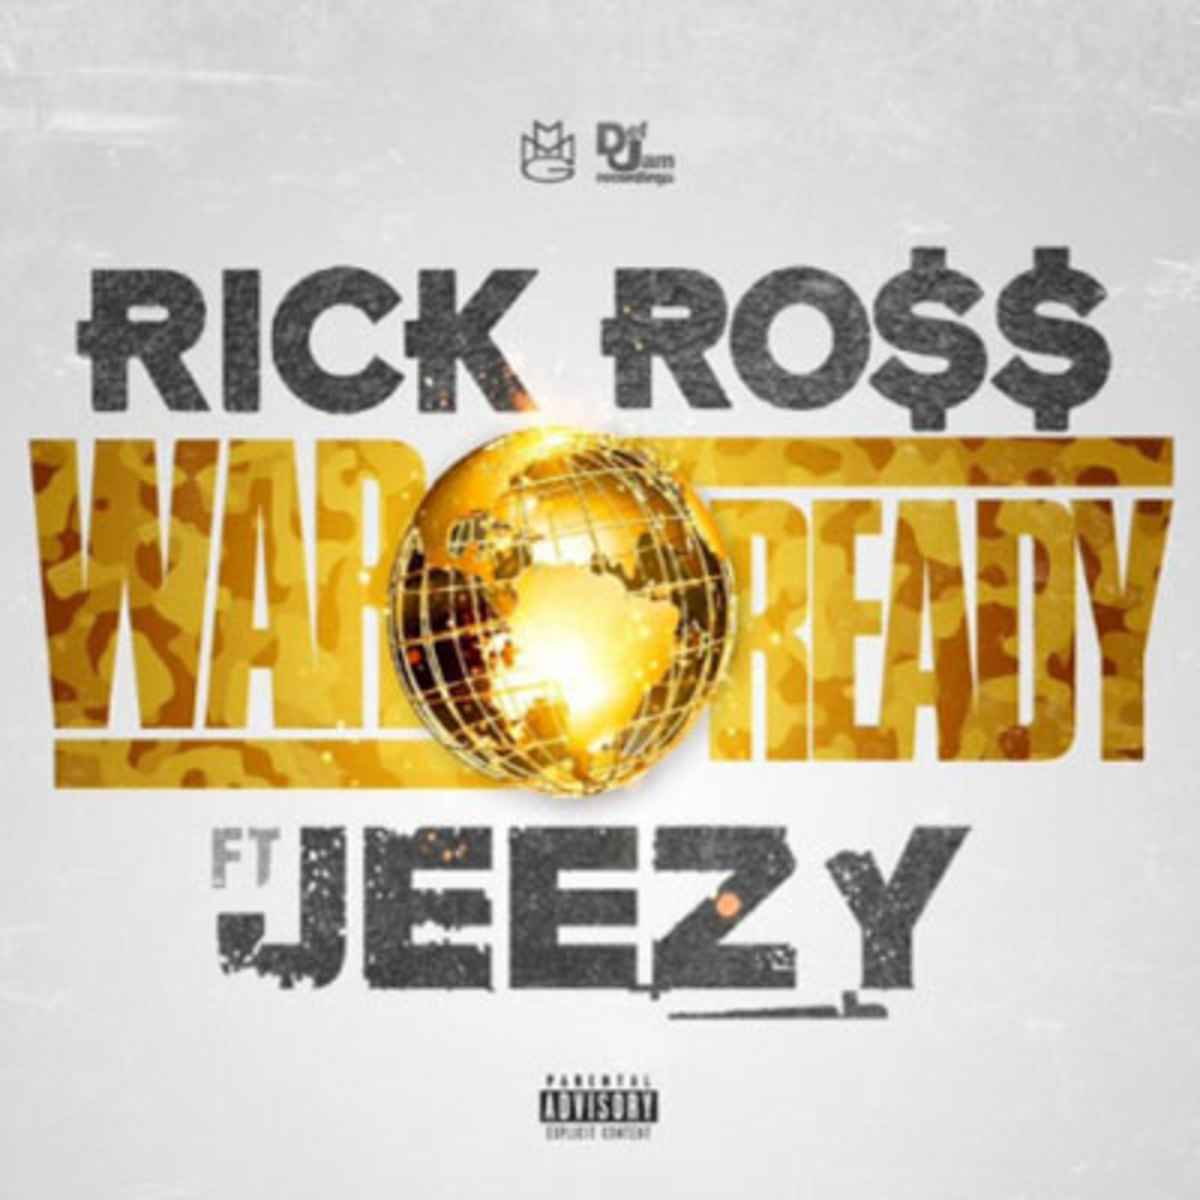 rickross-warready.jpg